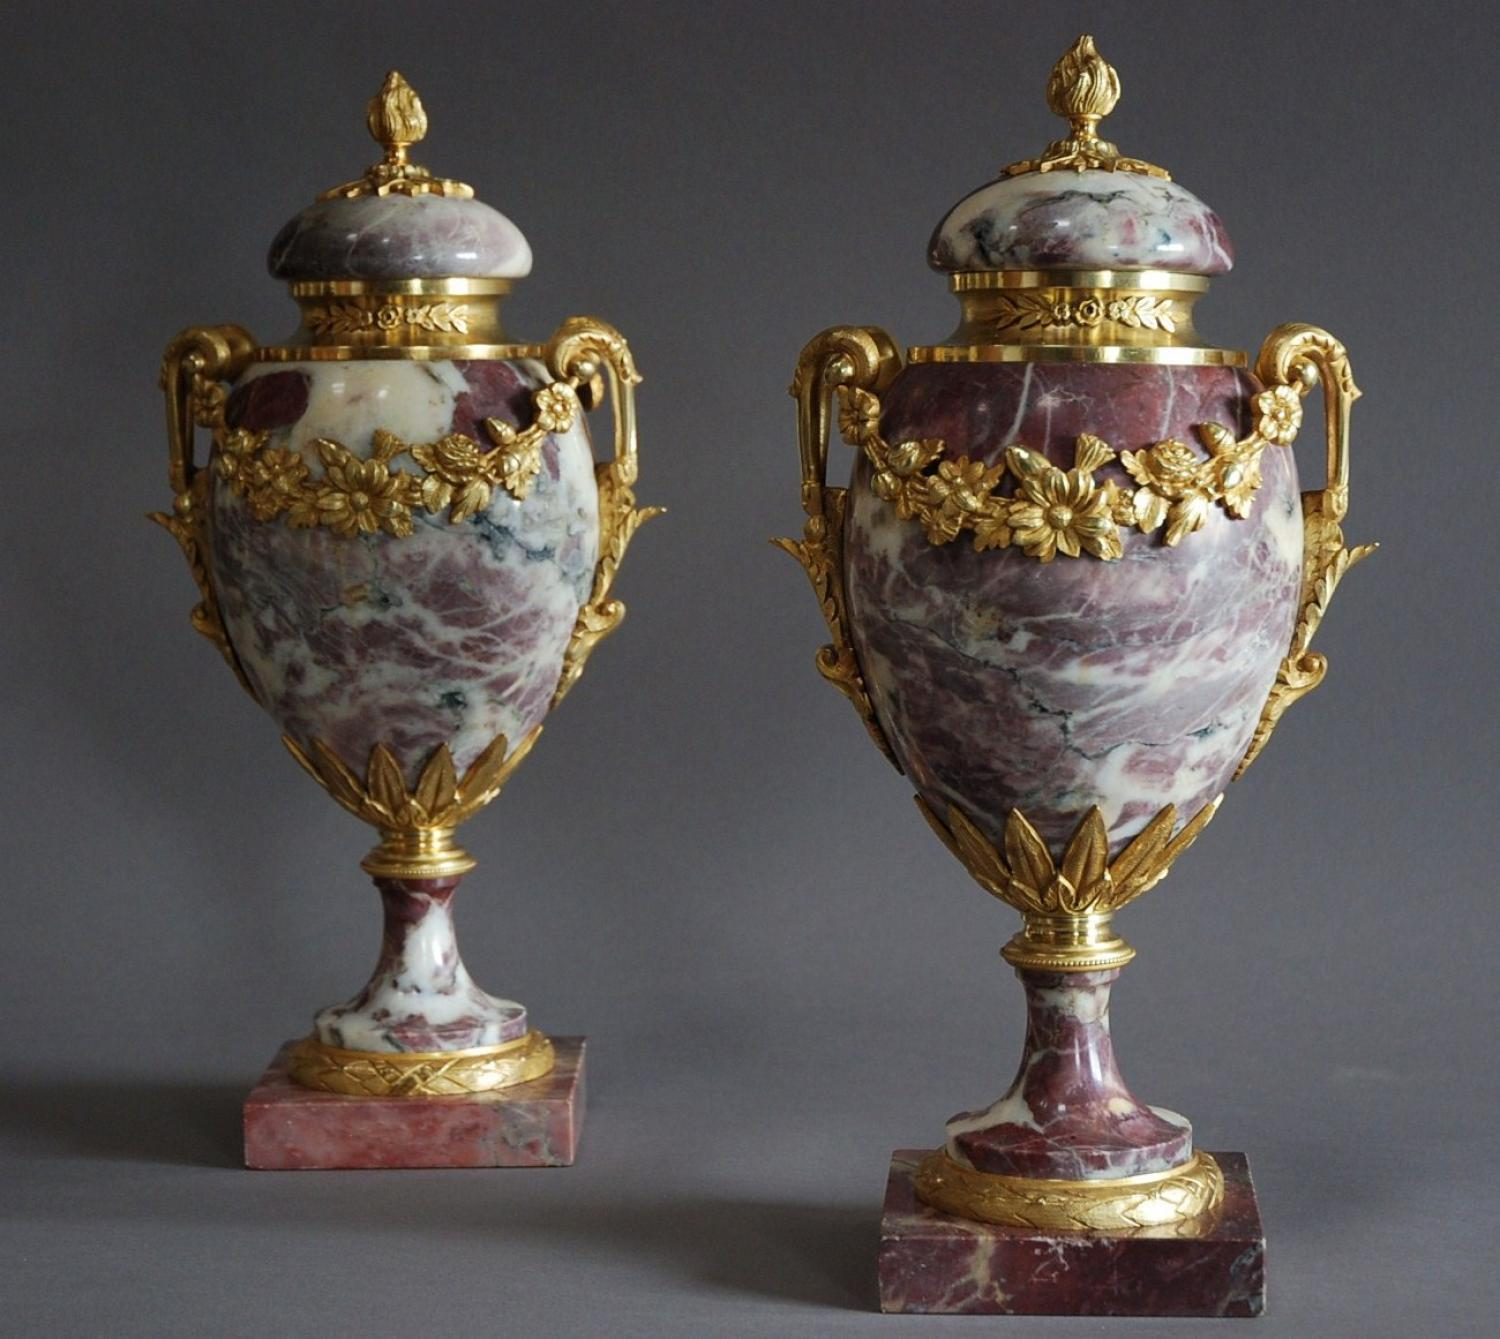 Superb pair of late 19thc marble & ormolu cassolettes